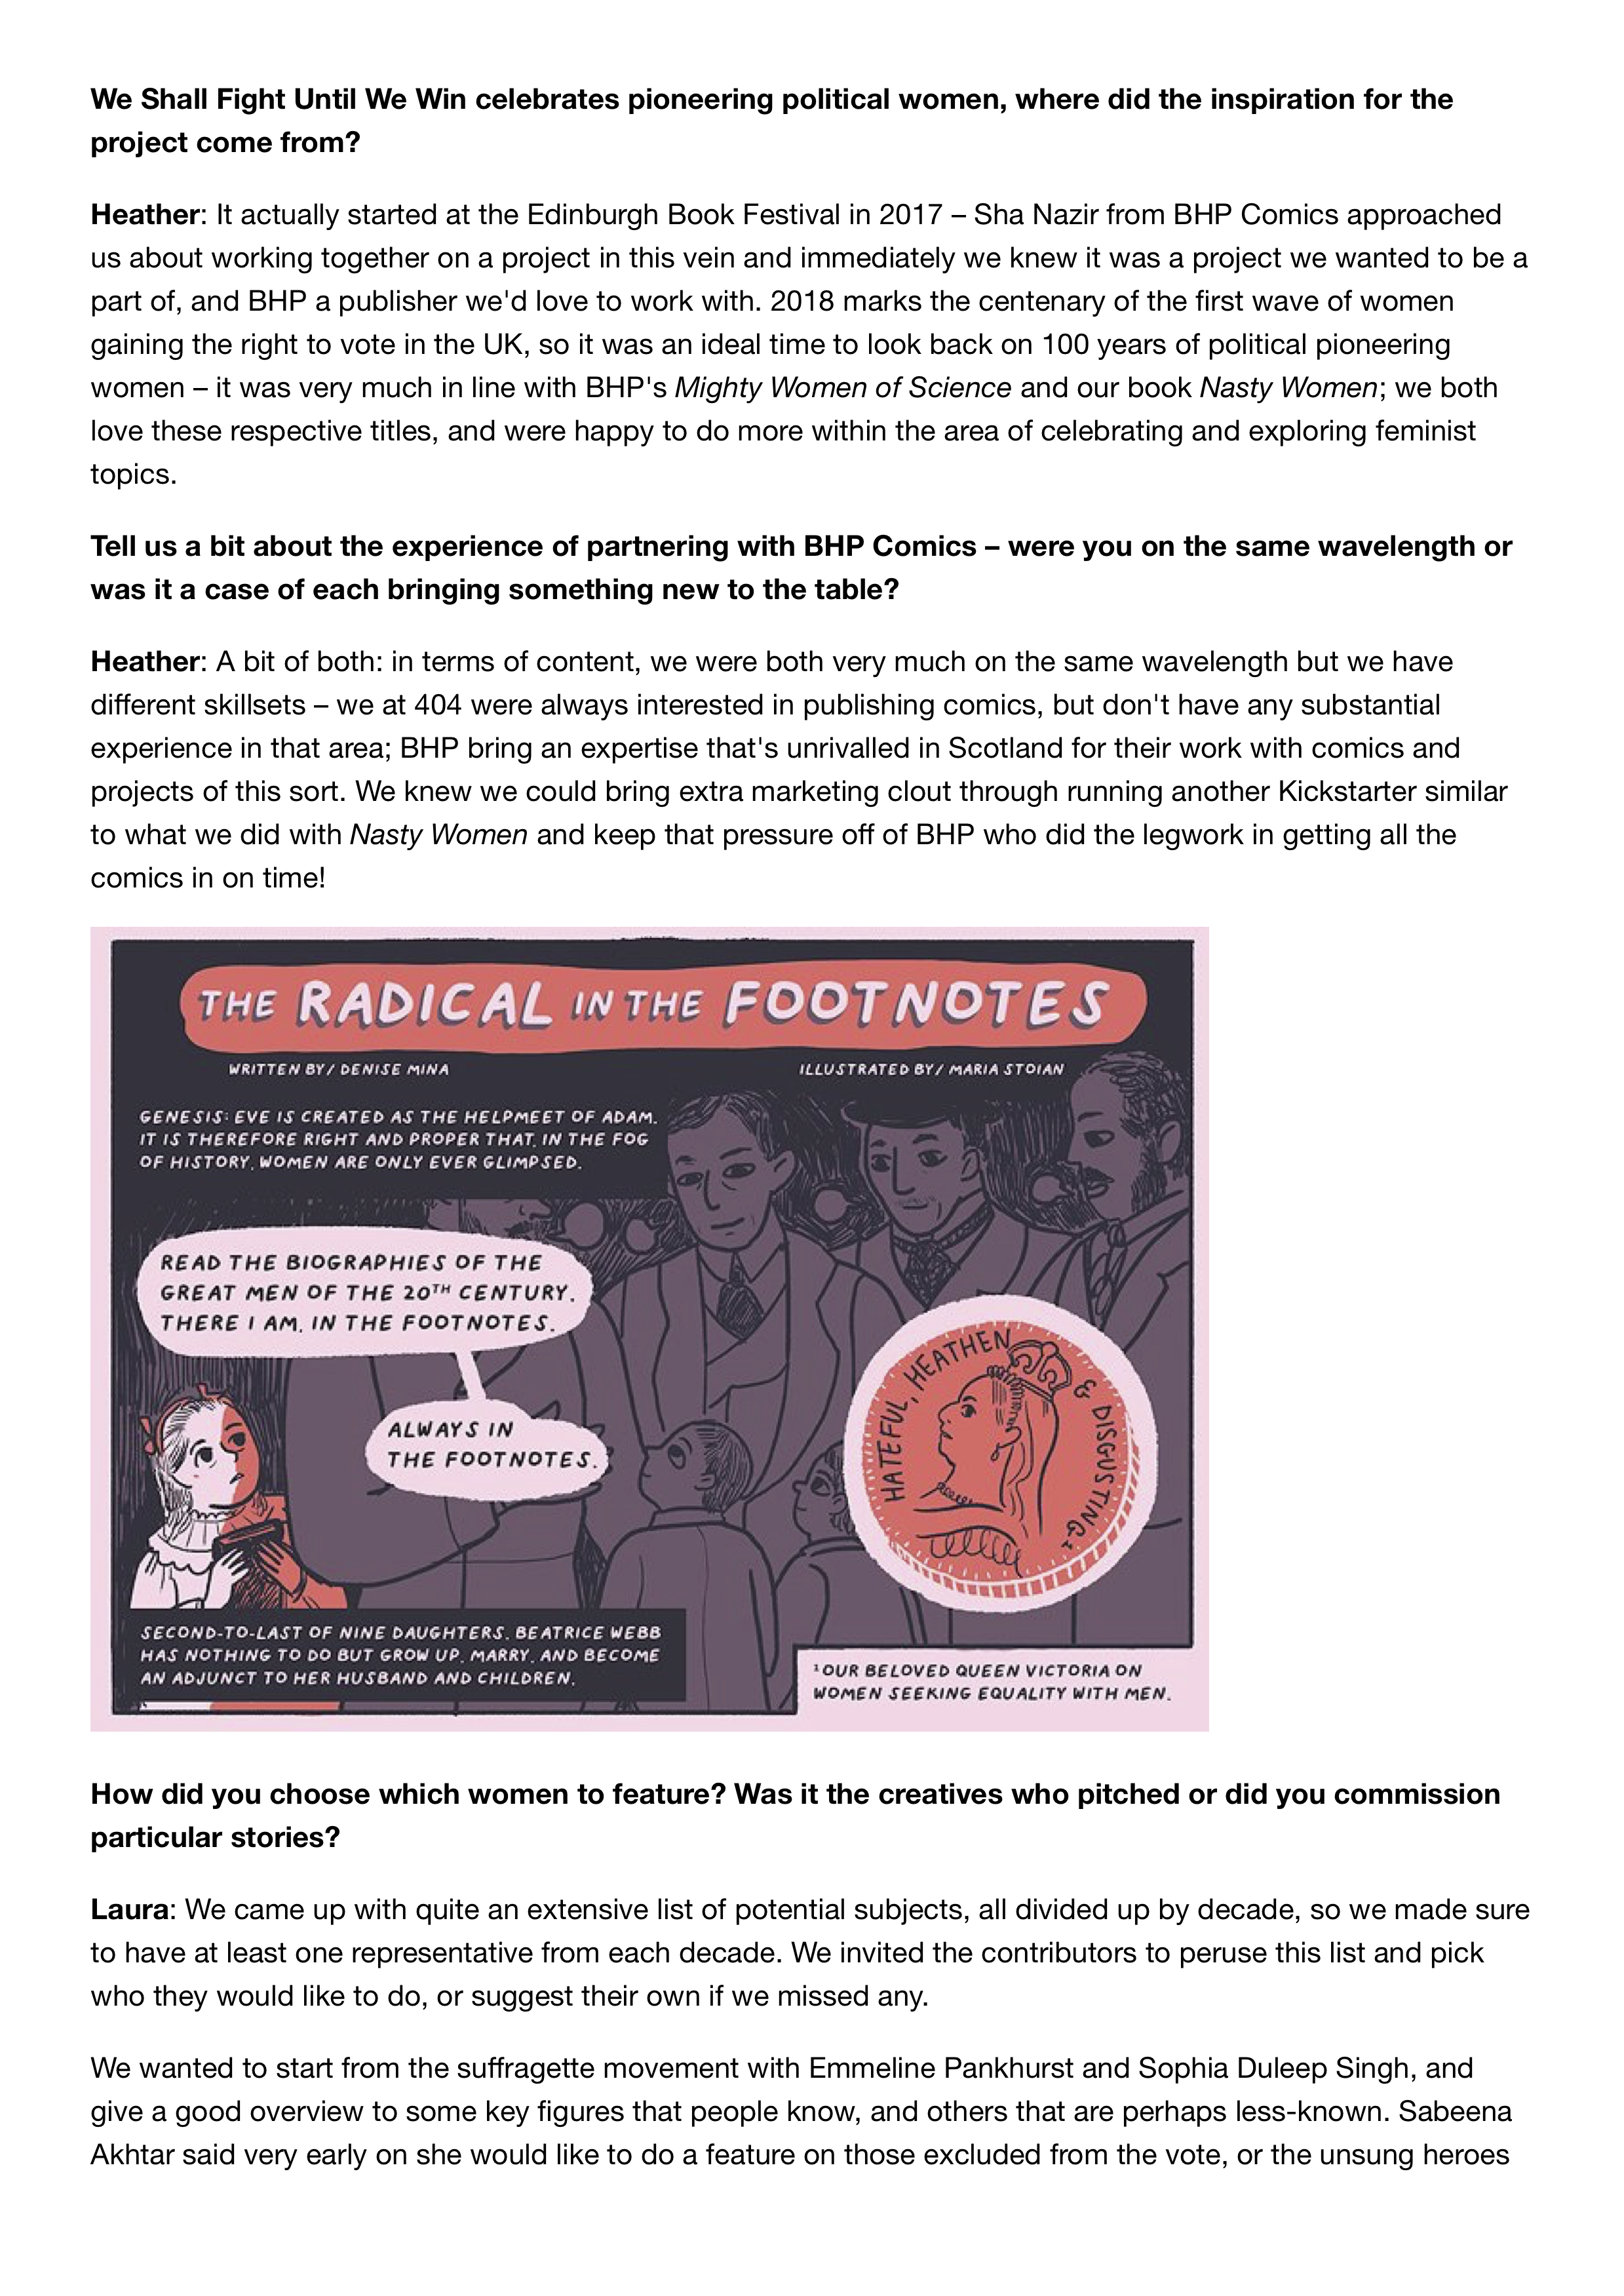 404 Ink and BHP Comics celebrate 100 years of political pioneering women _ The List 2.png